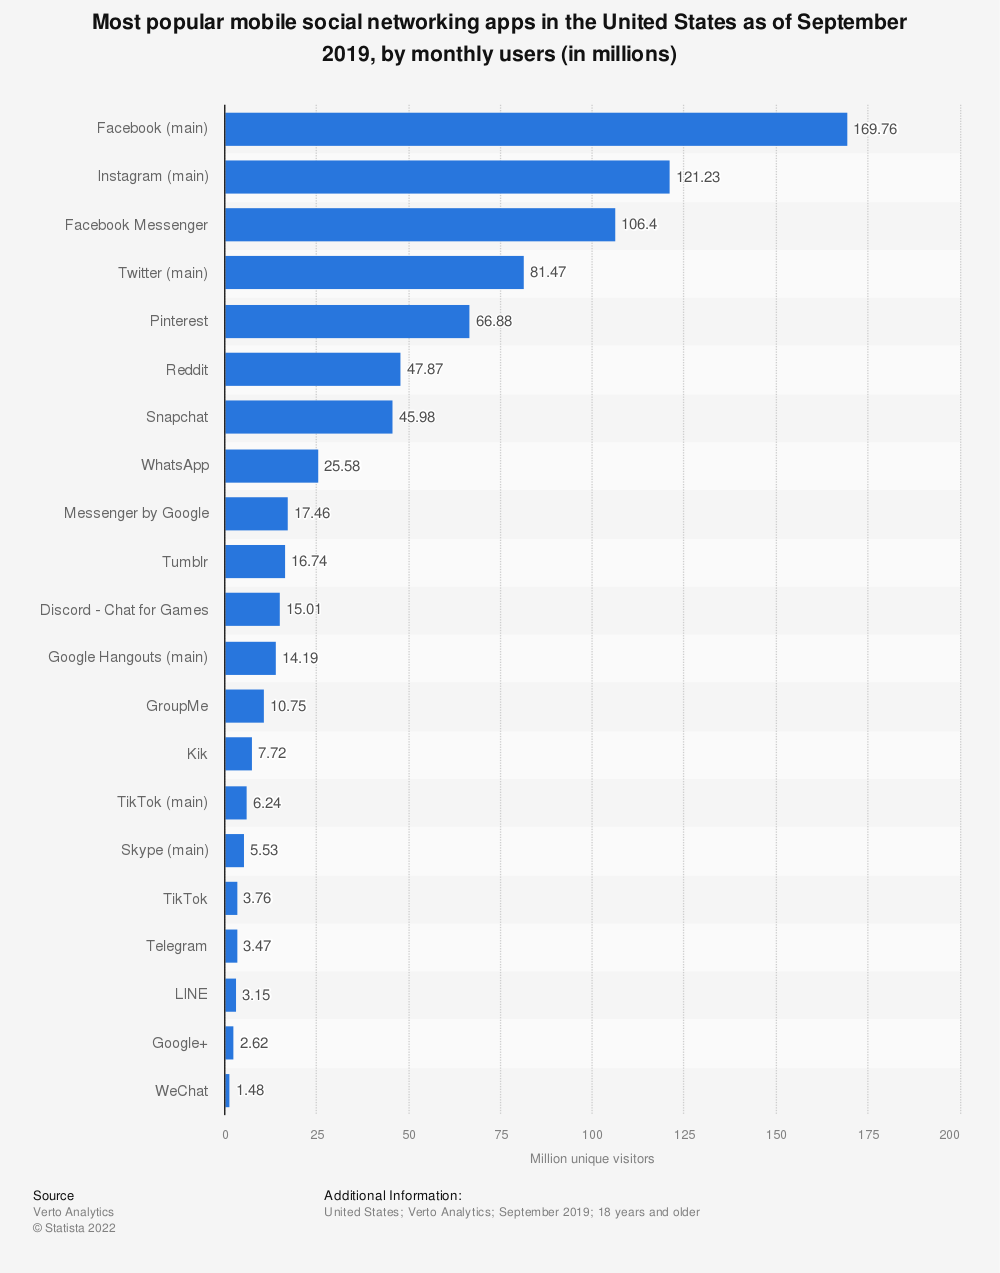 Statistic: Most popular mobile social networking apps in the United States as of September 2019, by monthly users (in millions) | Statista